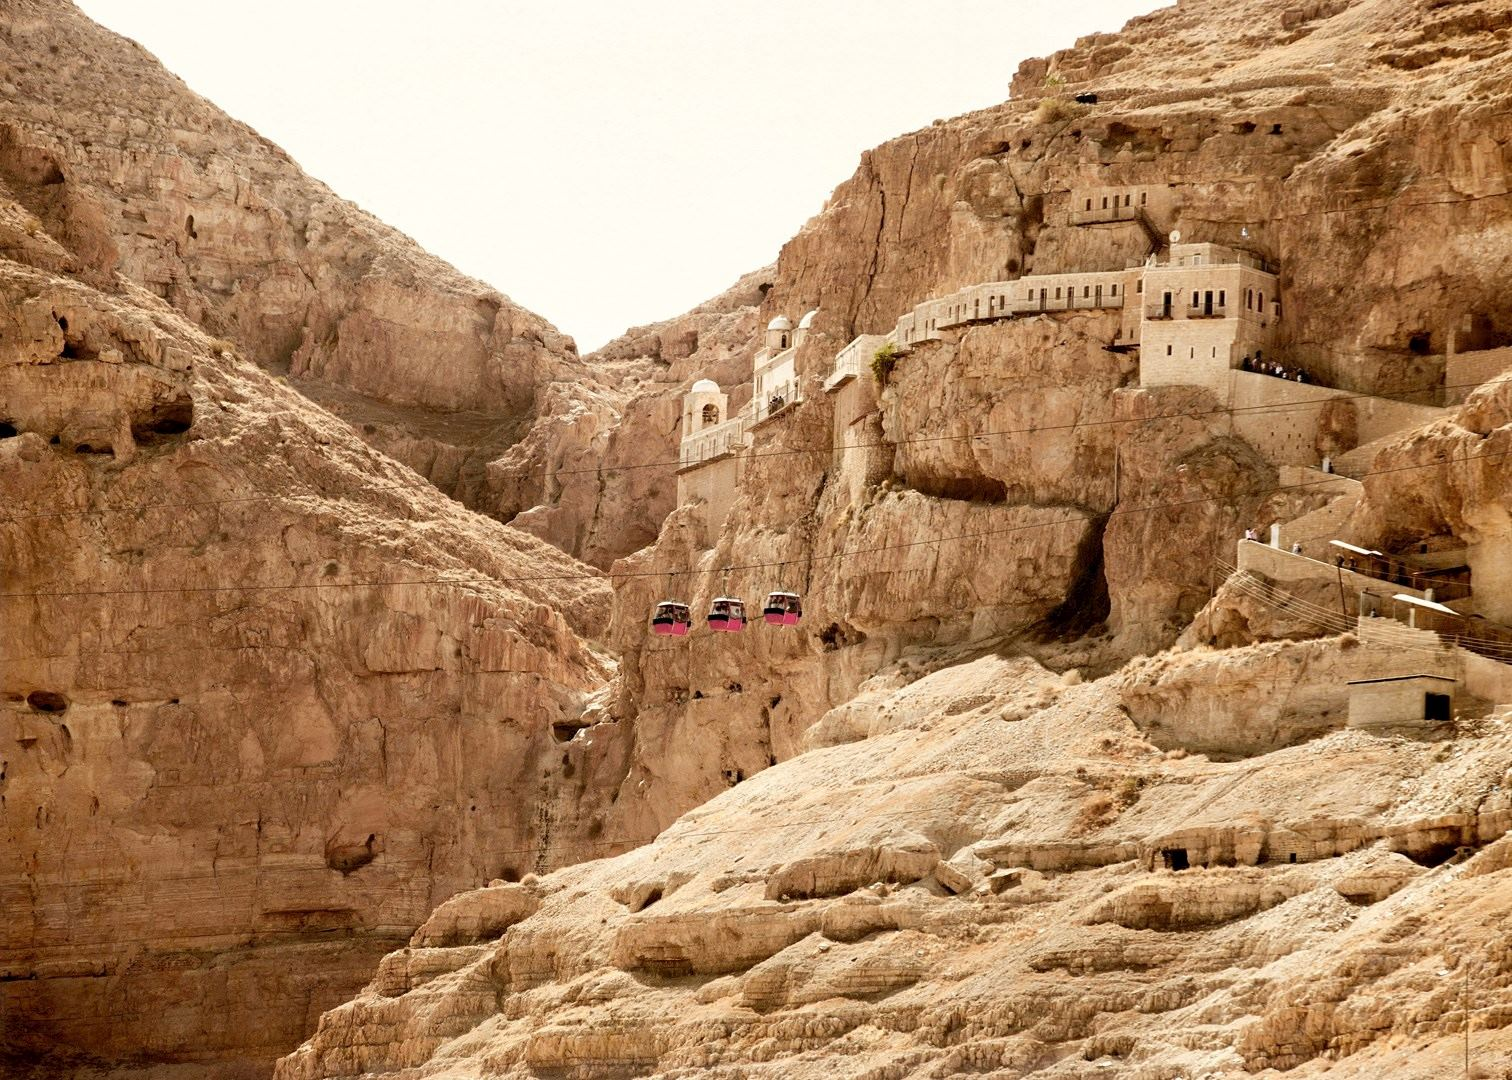 15975497-mount-of-temptation-jericho.jpg